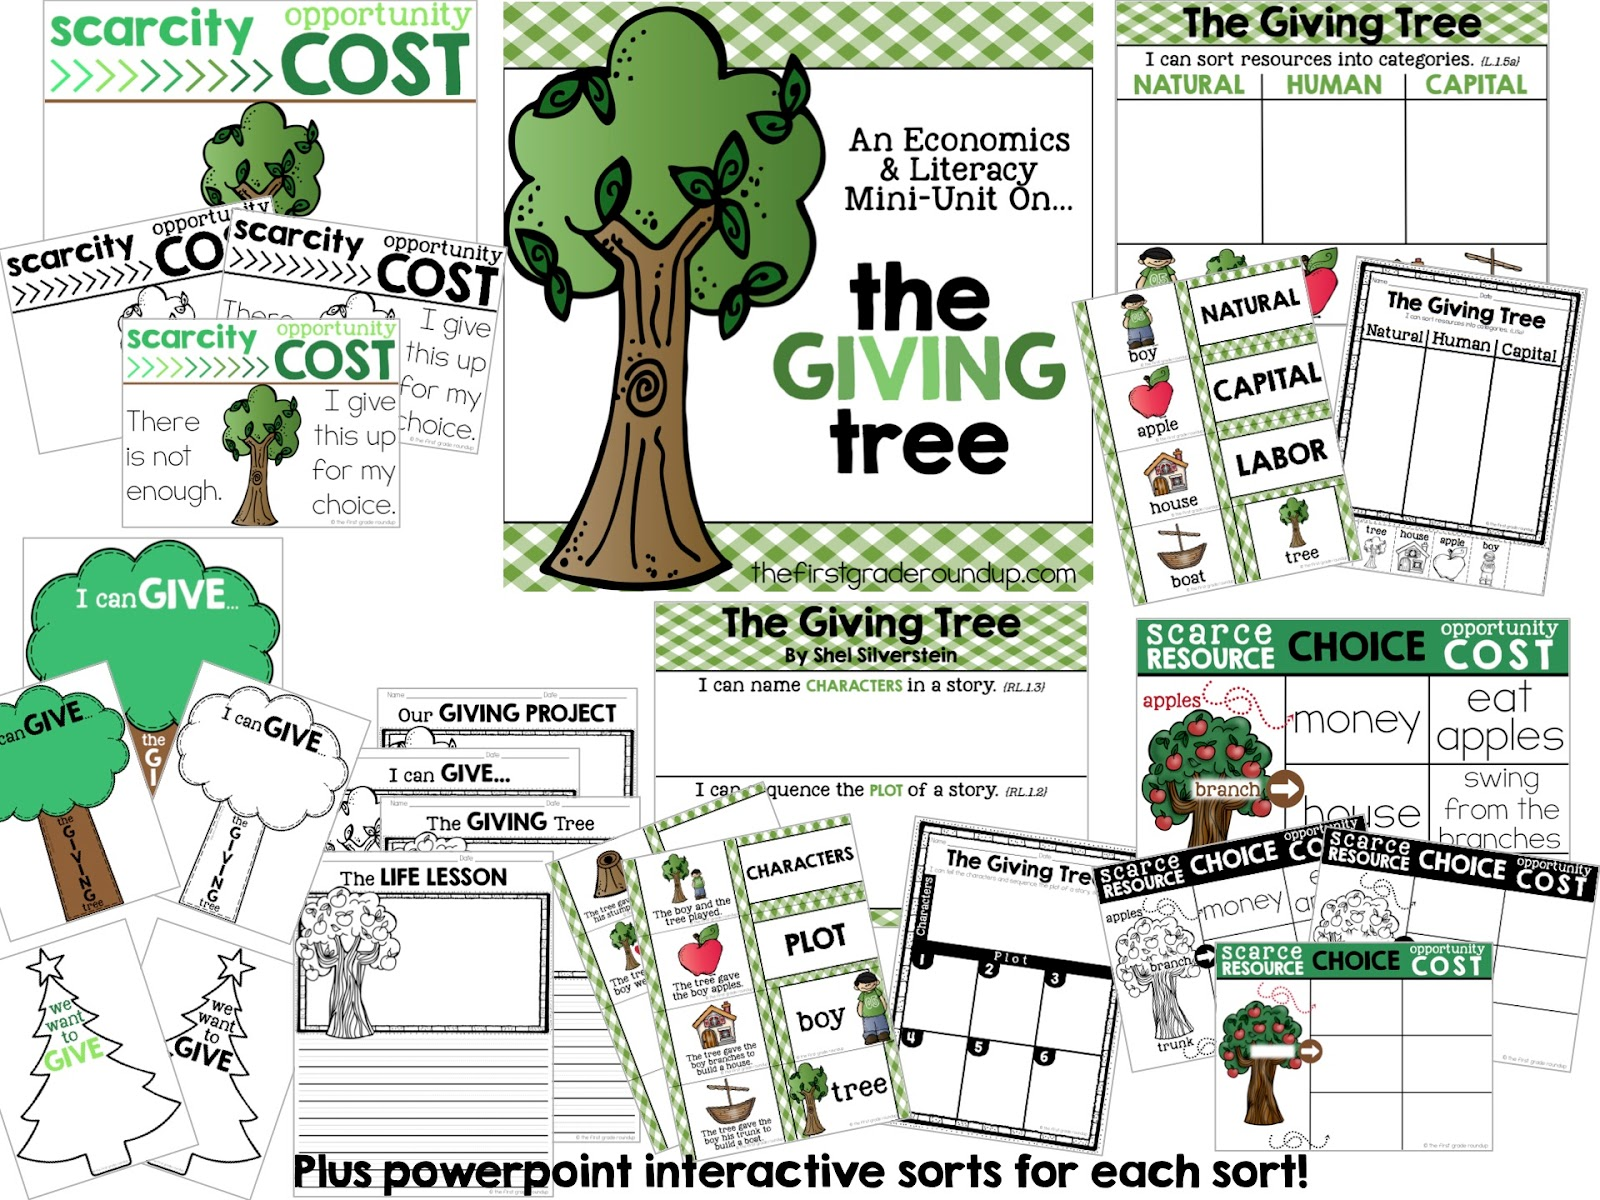 Worksheets The Giving Tree Worksheets the giving tree firstgraderoundup grab mini unit